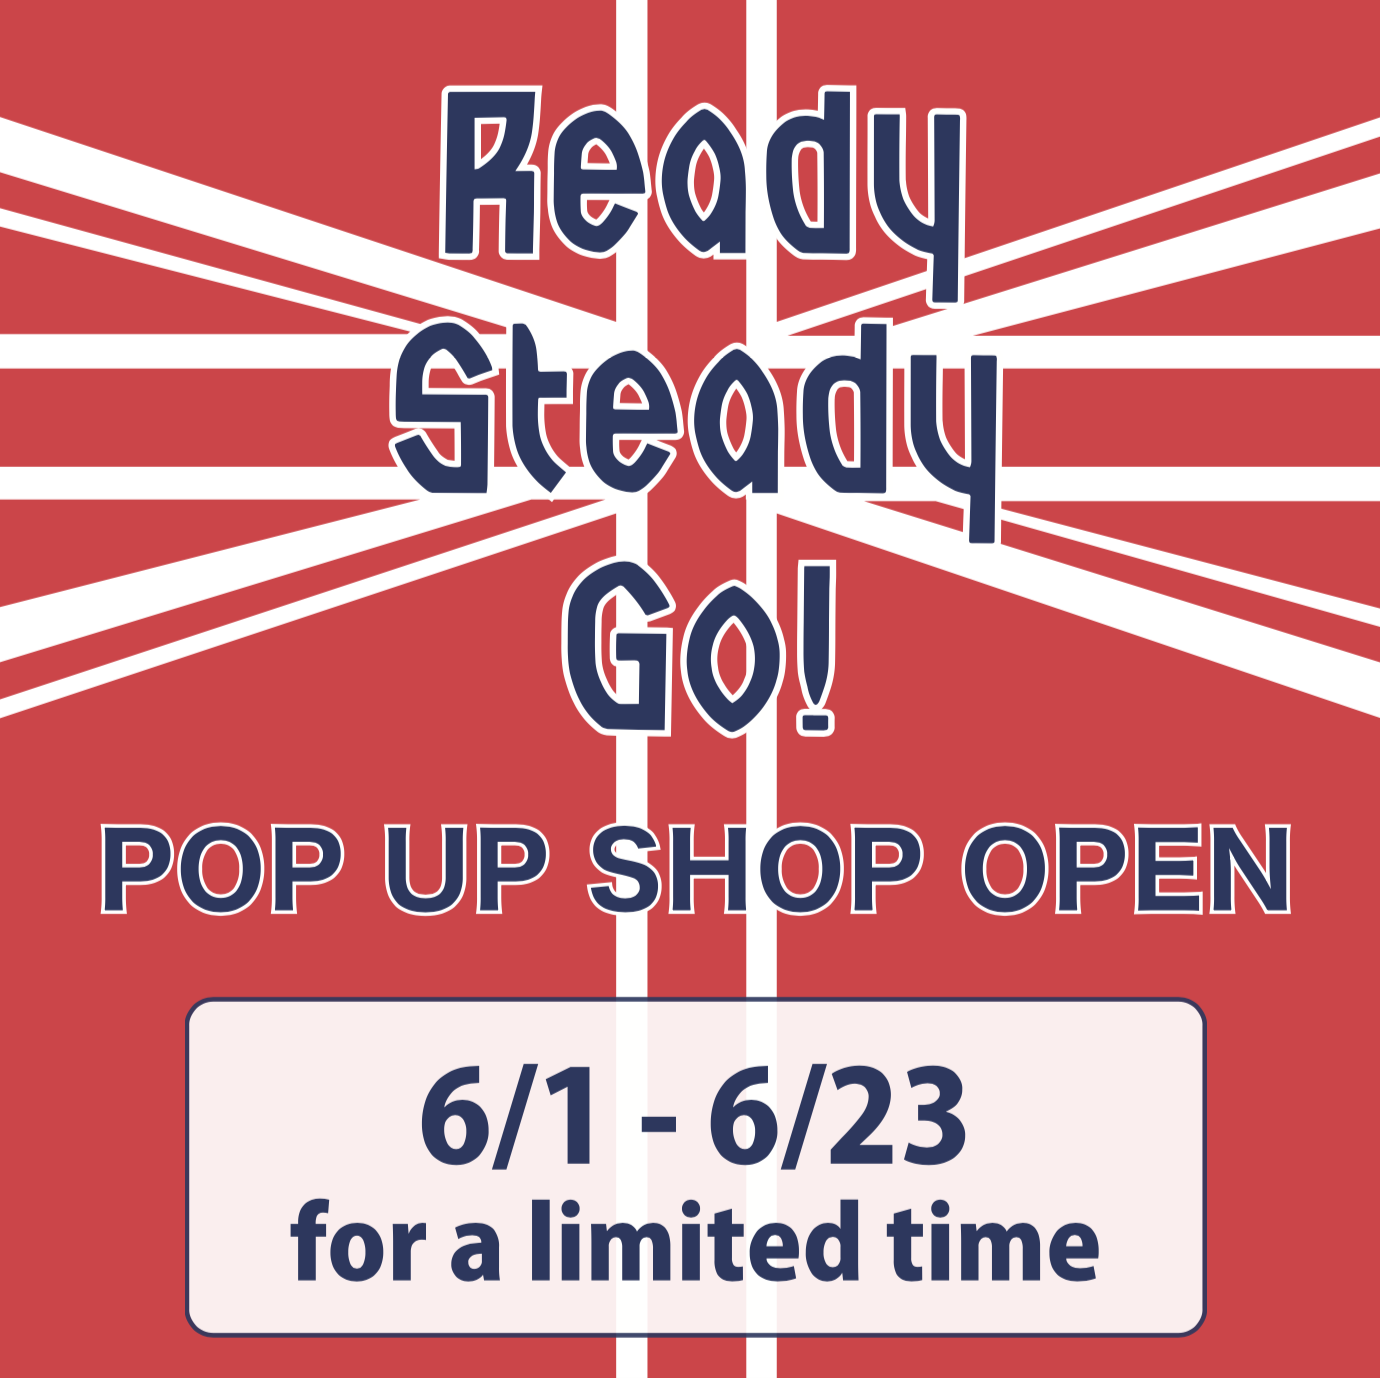 100年ぶりの更新は「Ready Steady Go! POPUP SHOP」_b0132530_18505581.png